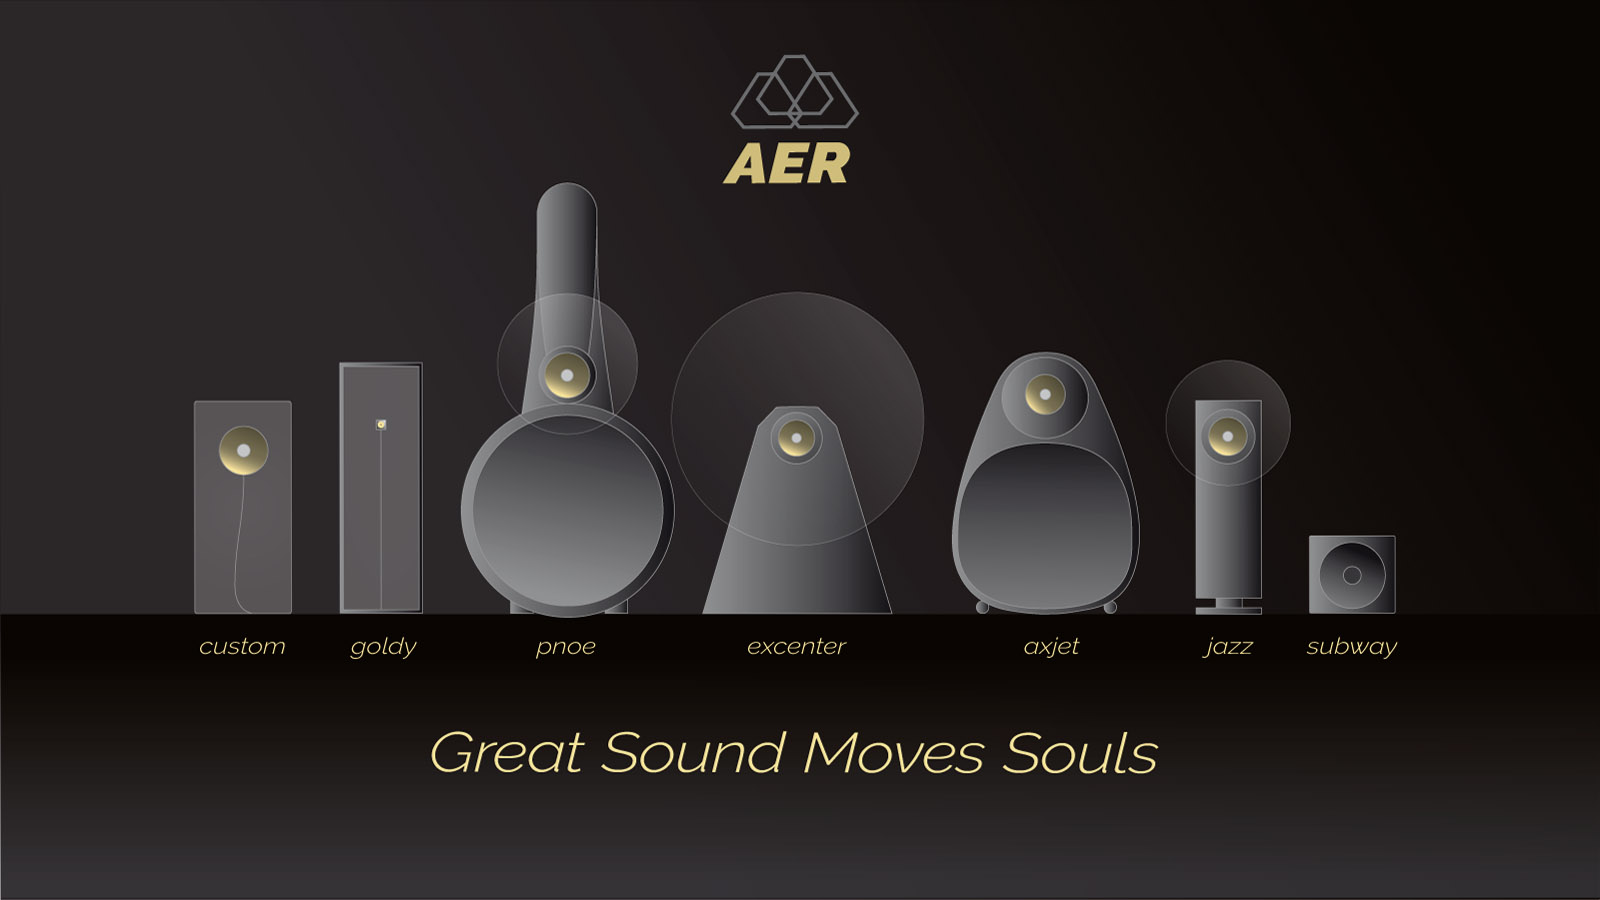 AER great sound move souls